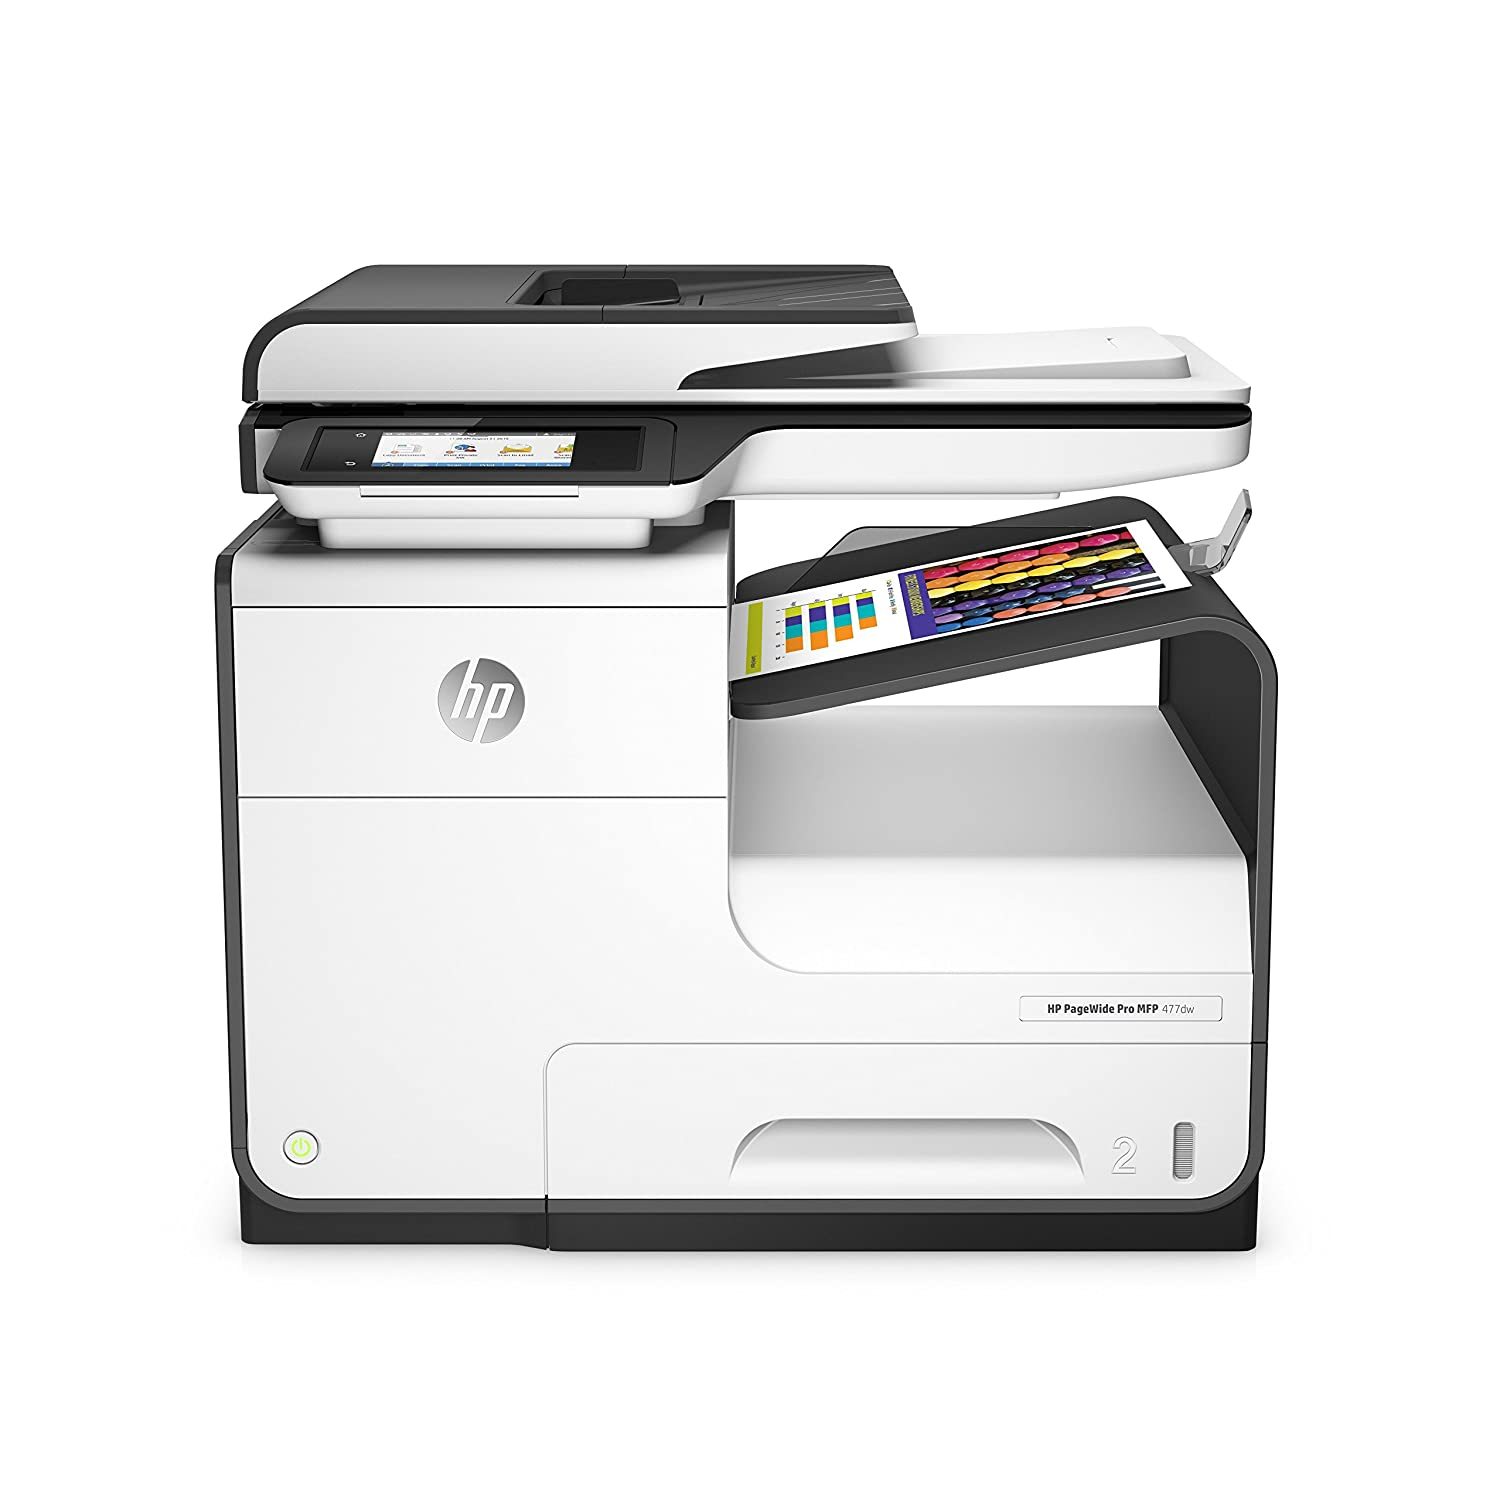 HP PAGEWIDE PRO 477DW DRIVERS FOR WINDOWS 8